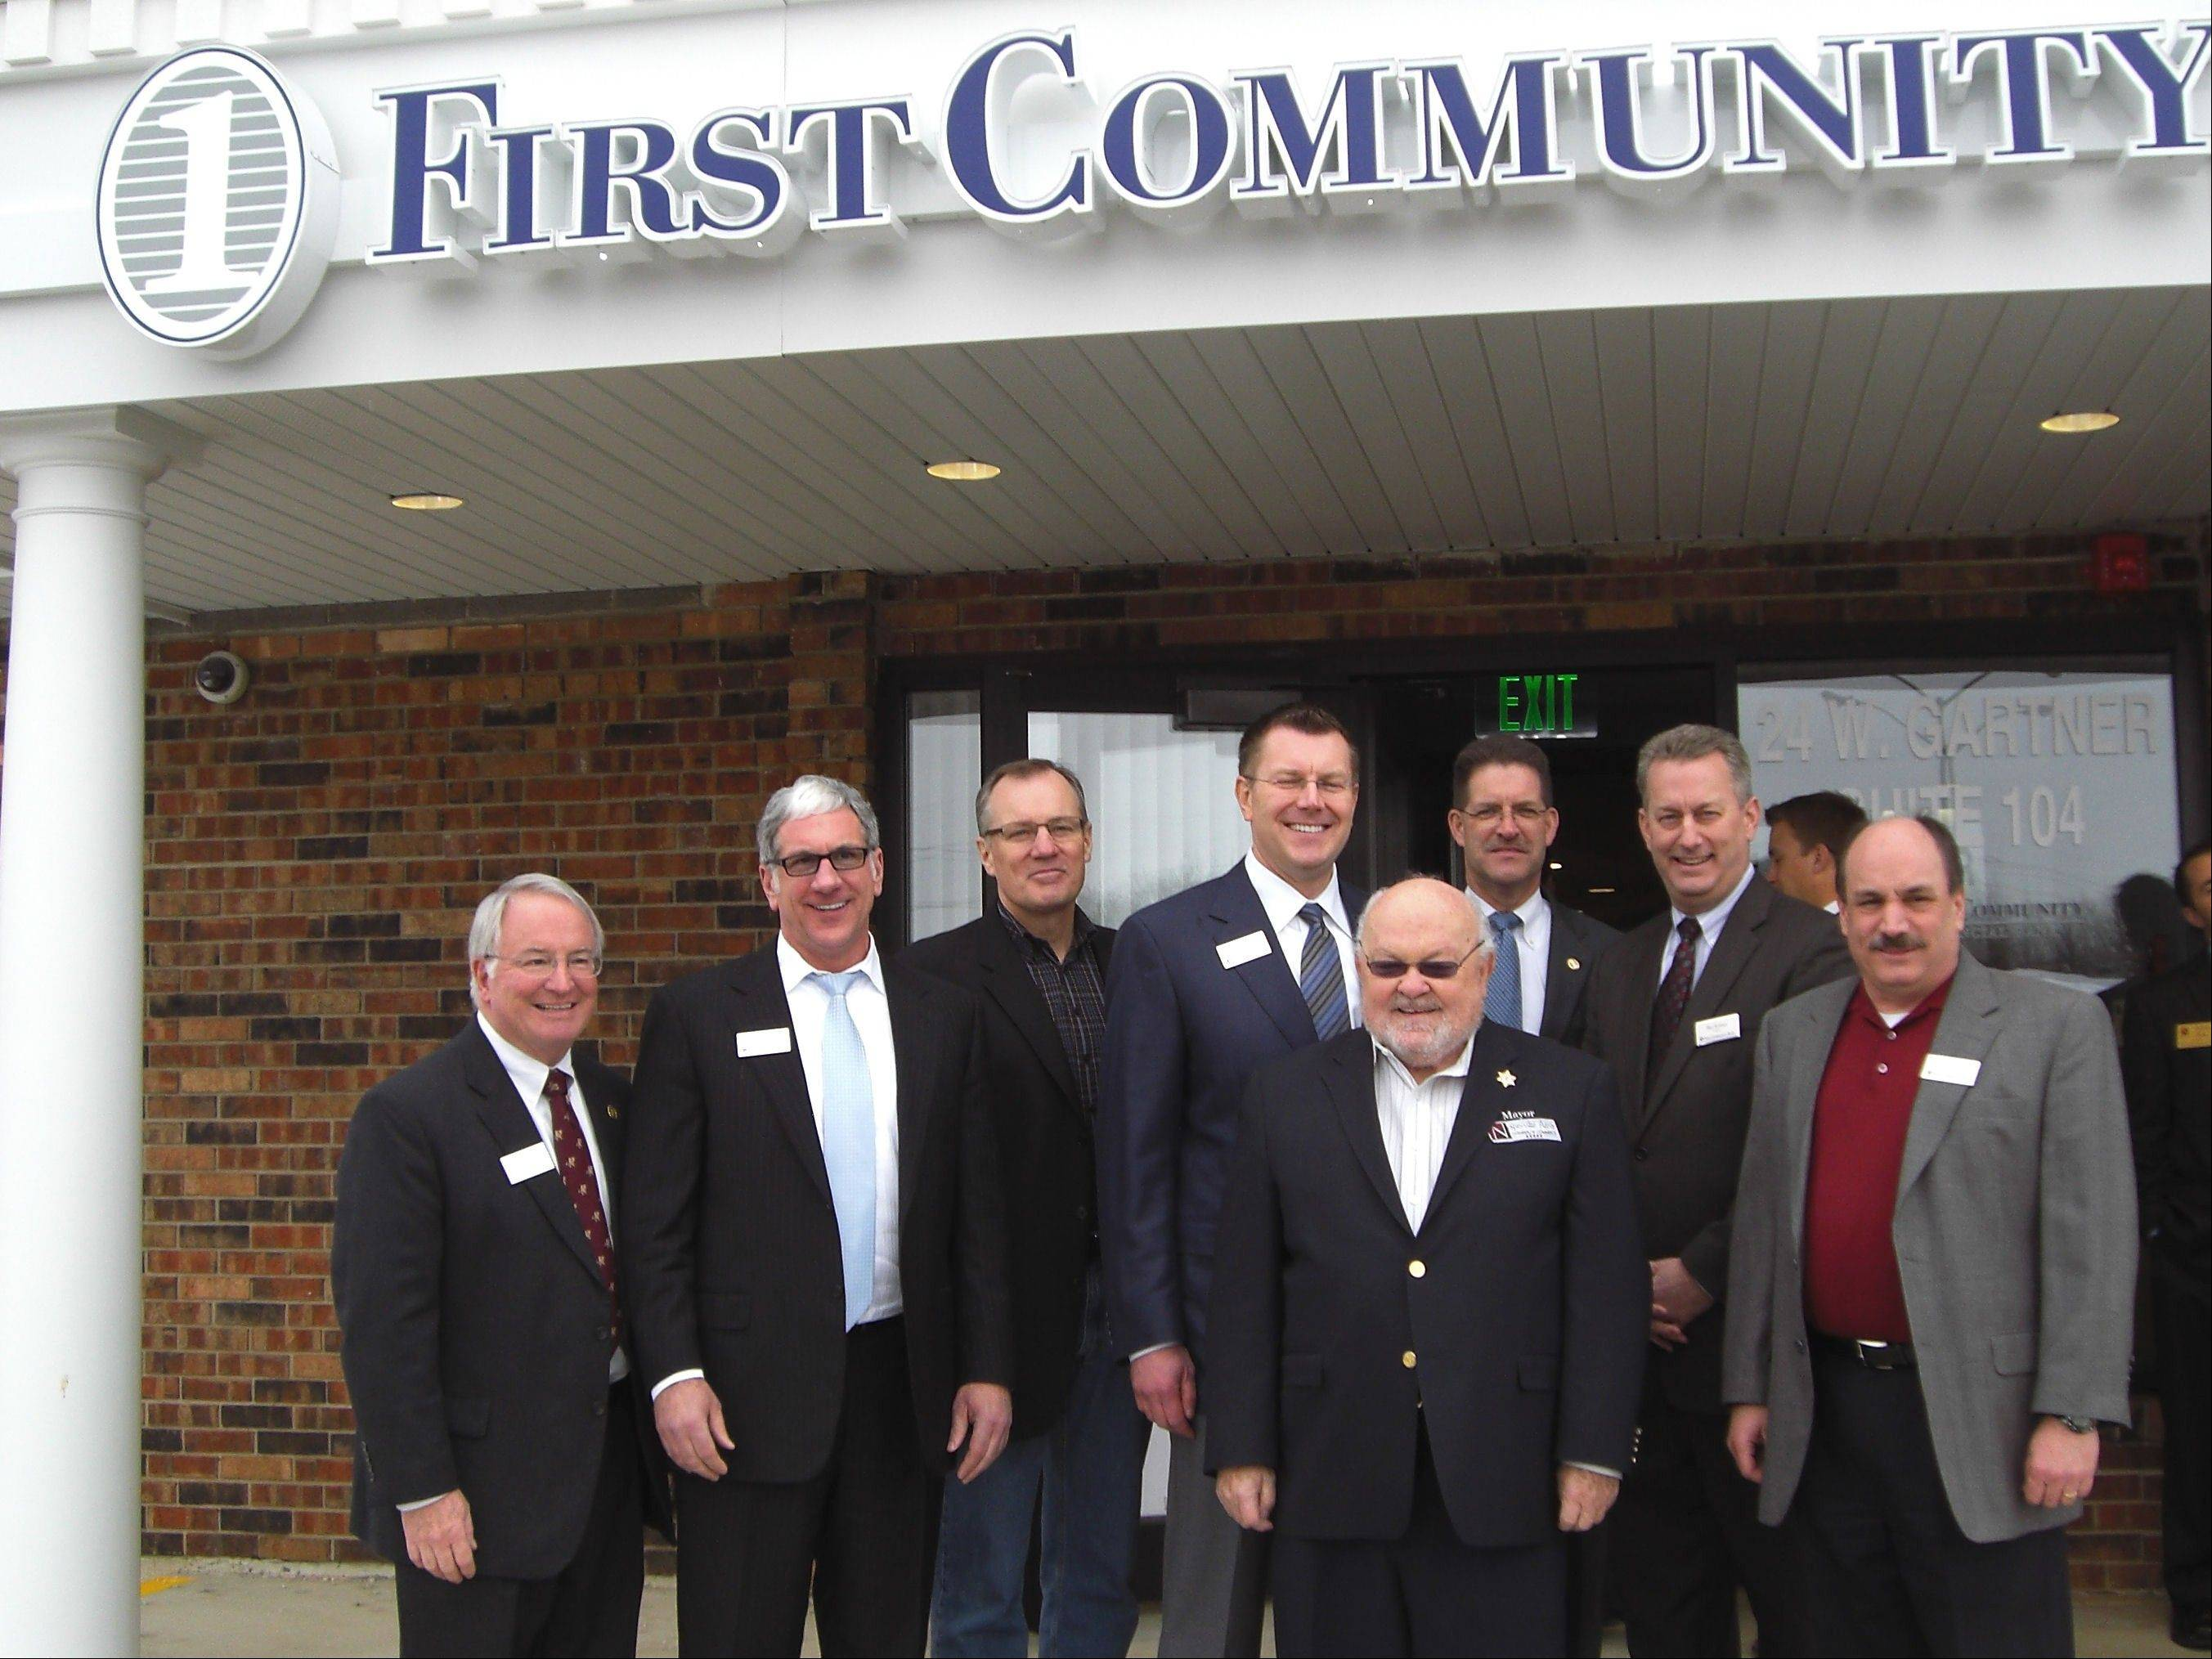 Pat Benton, market president First Community Bank -- Naperville, from left, board members John Freiburger, Dan Casey, and Scott Wehril, Naperville Mayor A. George Pradel, Steven Randich, president of First Community Bank of Joliet, and board members Ray Kinney and Kevin Gensler. .